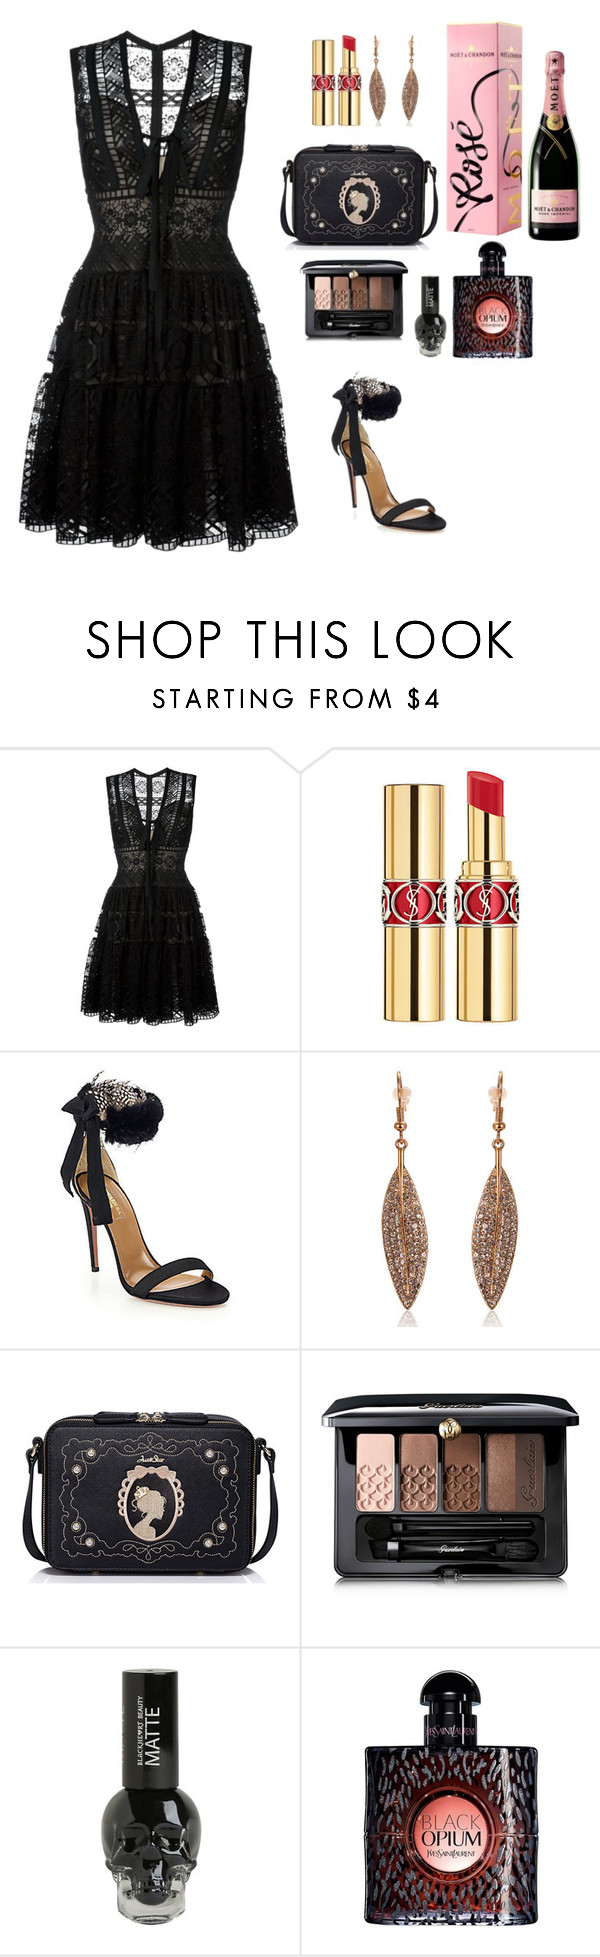 """""""Party all night"""" by lynguyen-i ❤ liked on Polyvore featuring beauty, Elie Saab, Yves Saint Laurent, Aquazzura, WithChic and Guerlain"""